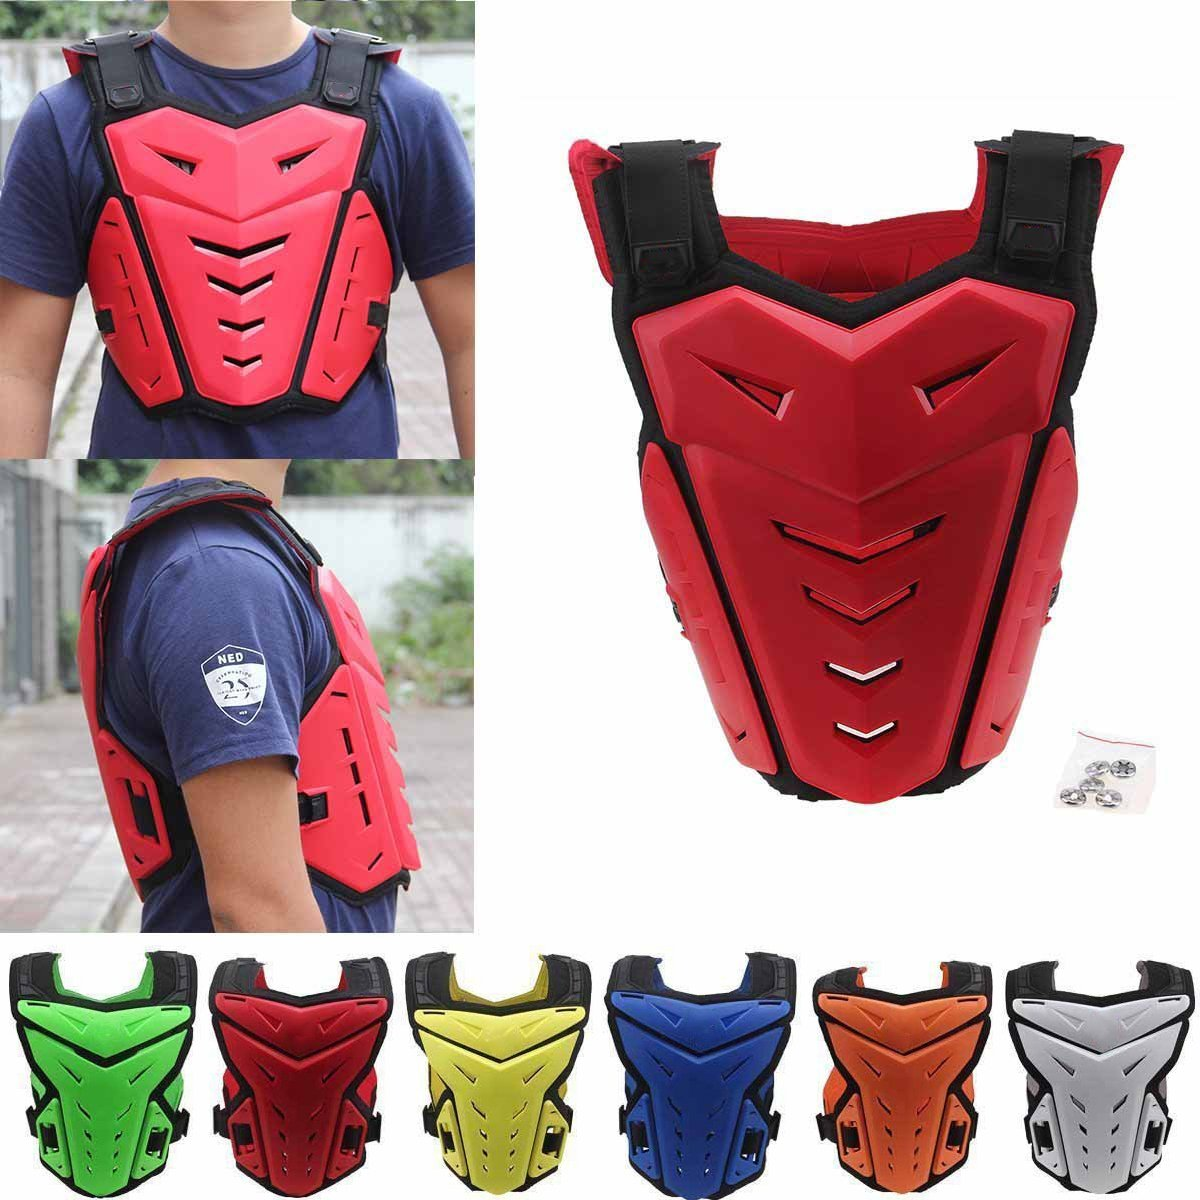 Chest Back Vest Armor Protector for Motocross Riding Skating Skiing Scooter